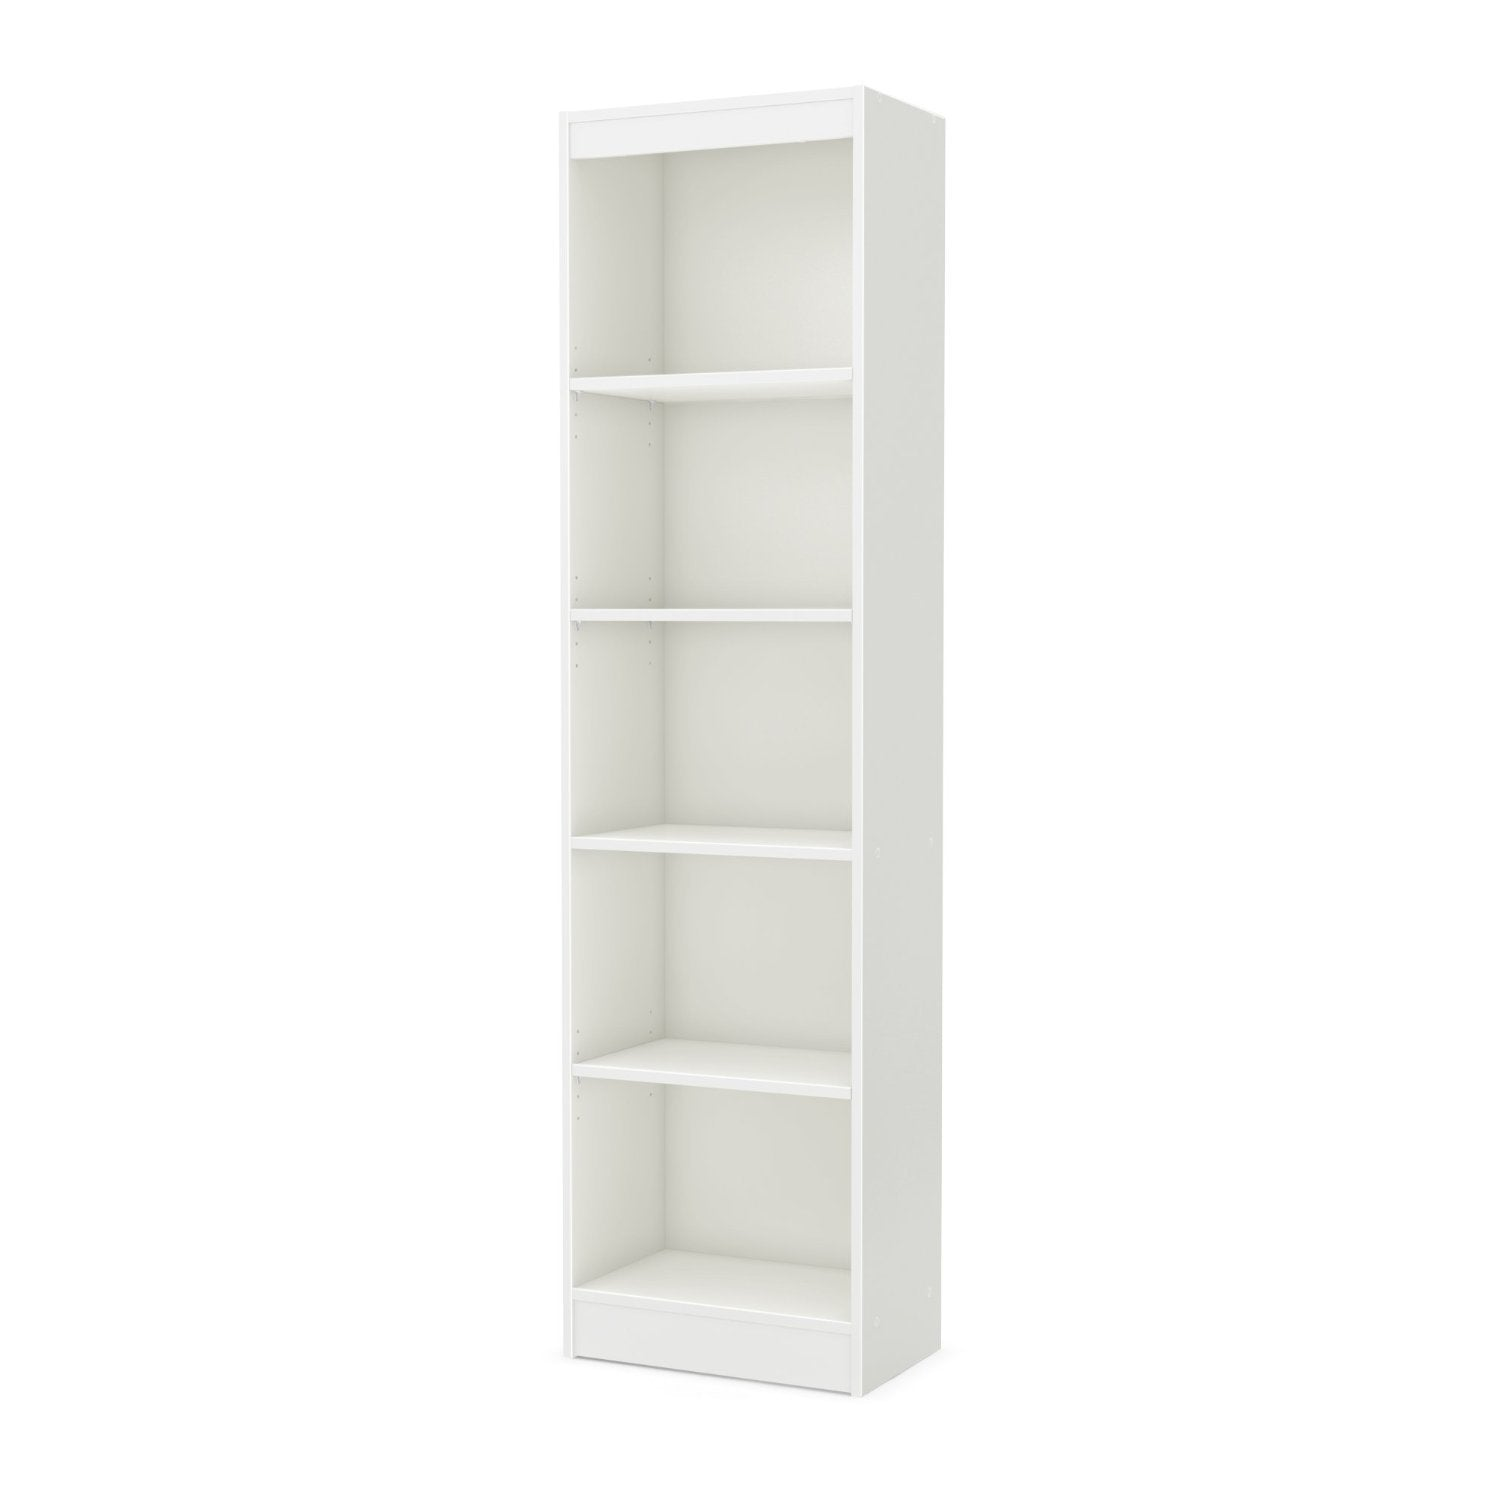 5-Shelf Narrow Bookcase Storage Shelves in White Wood Finish